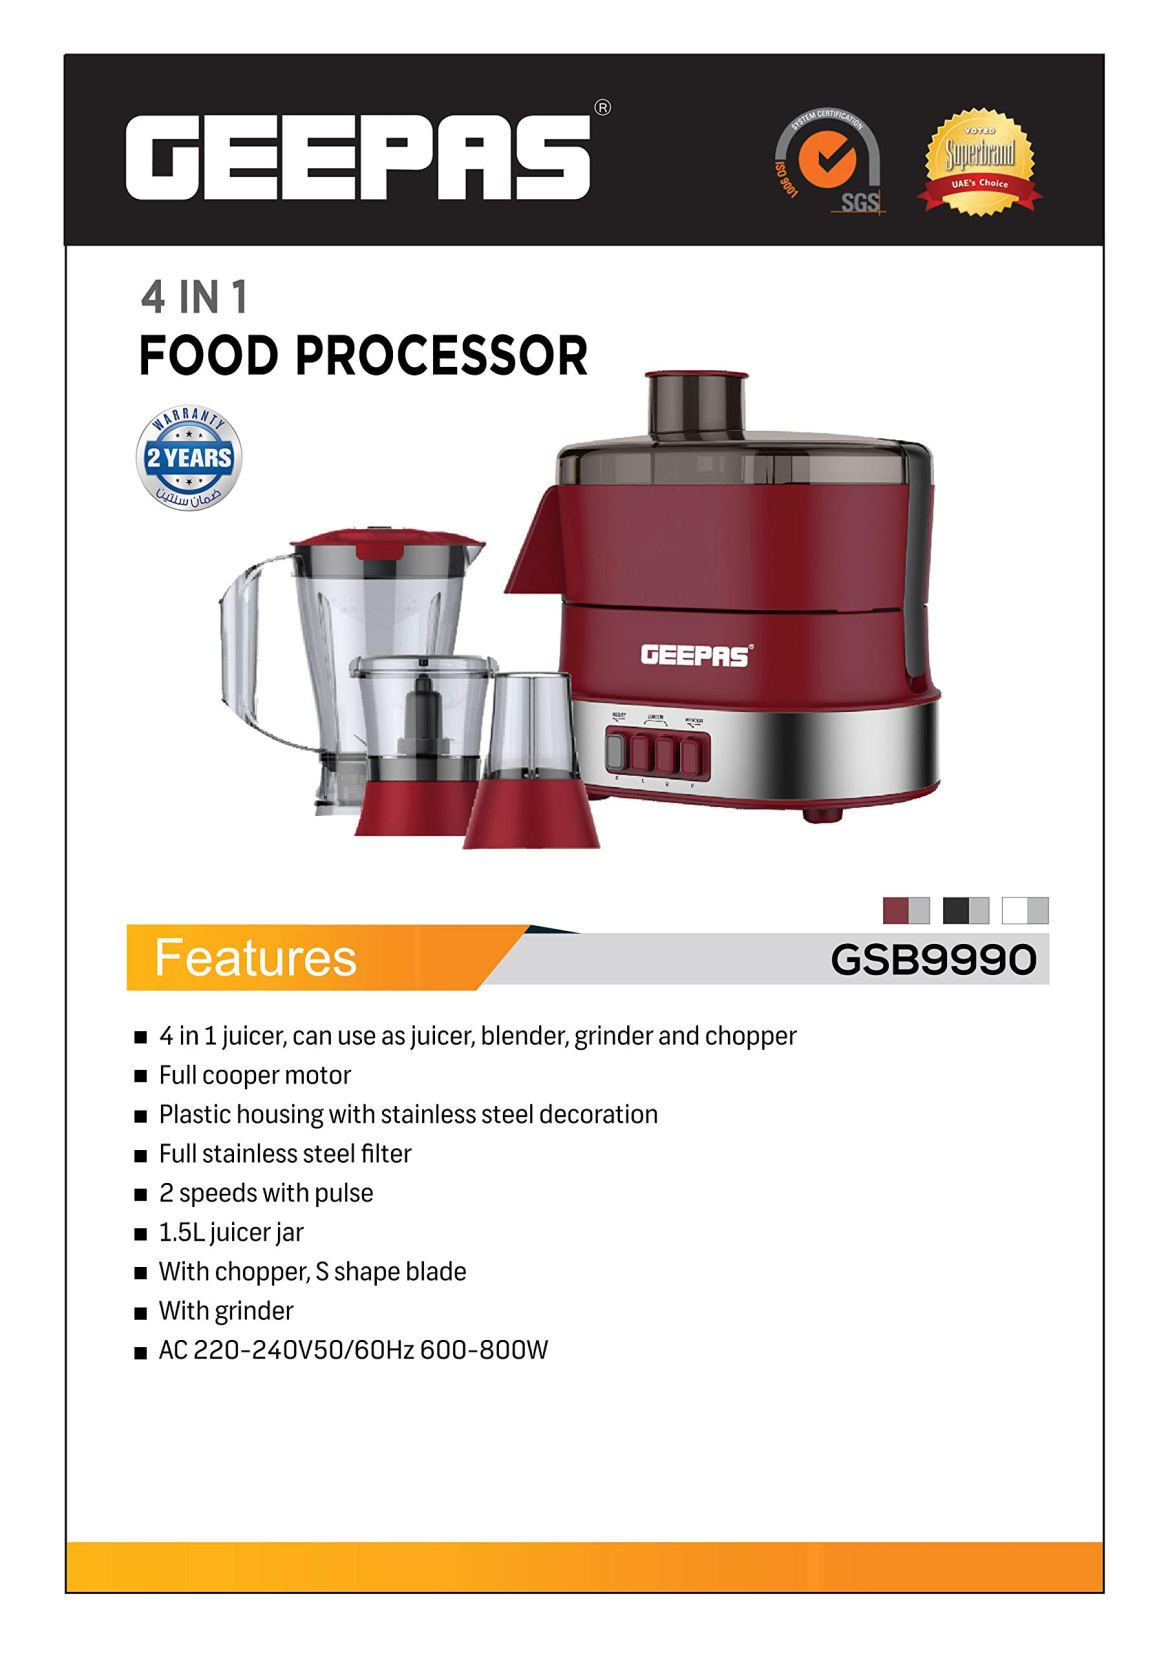 Geepas 4-in-1 Multi-Function Food Processor - Electric Blender Juicer, 2-Speed with Pulse Function & Safety Interlock | 800W |Juicer, Blender, Mixture & Coffee Mill Included | 2 Years Warranty: Buy Online at